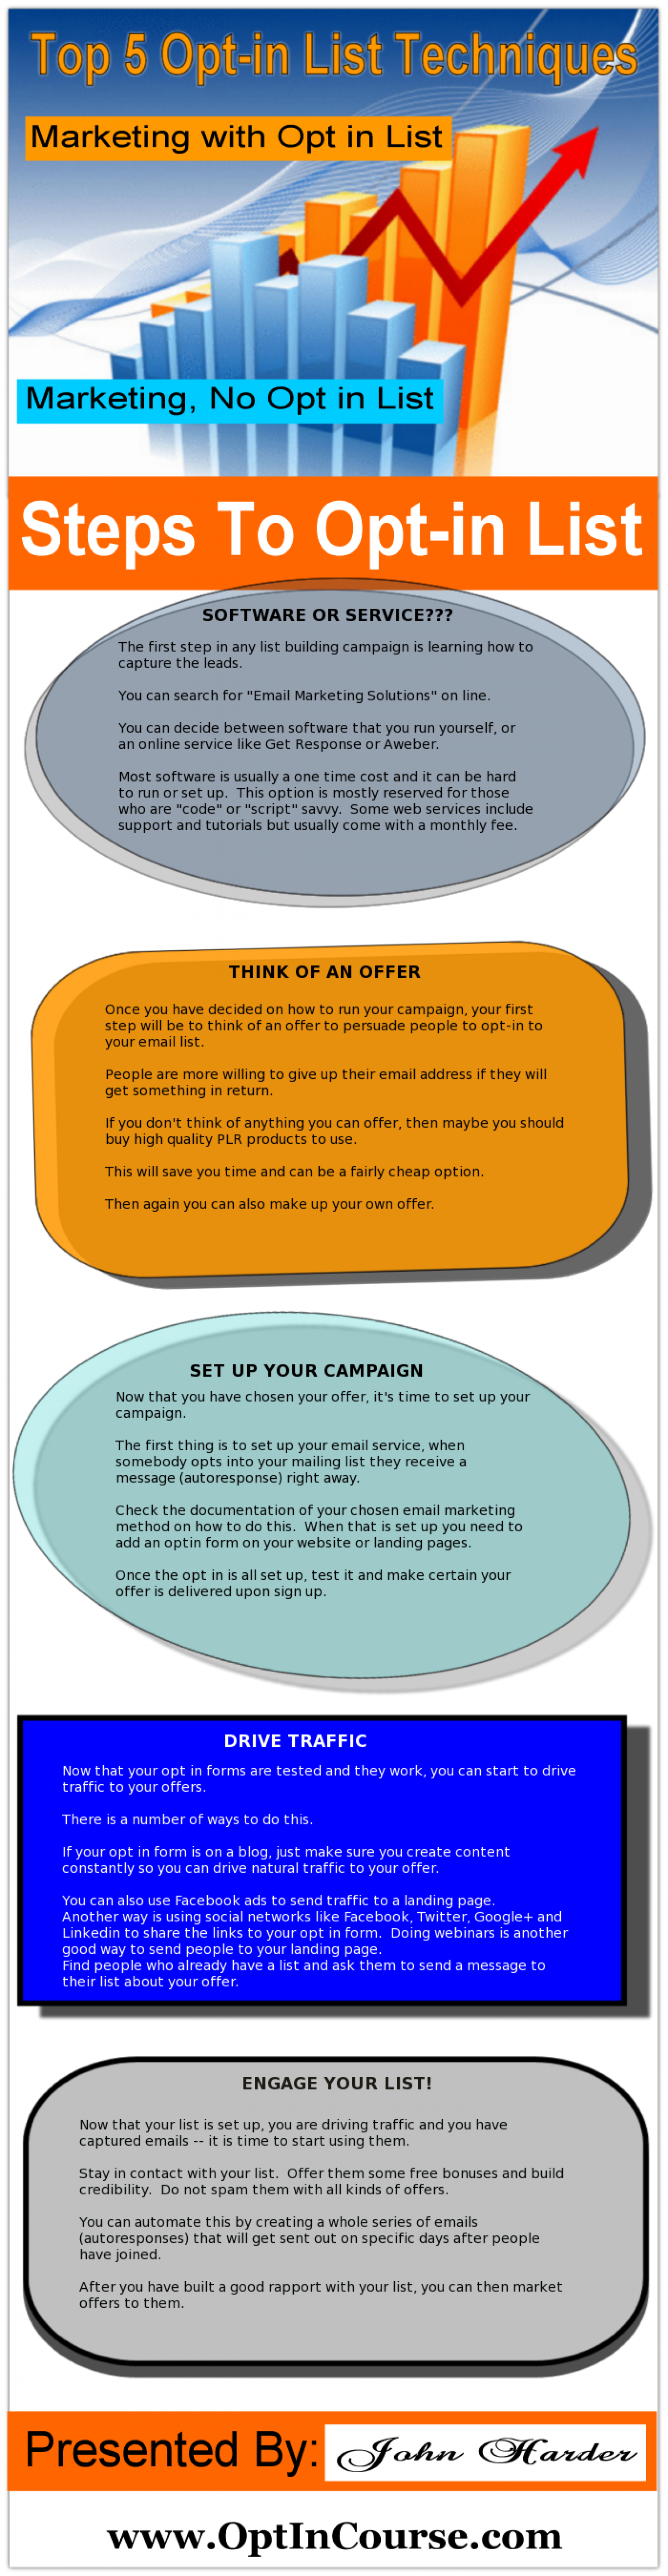 Top 5 Opt-in List Techniques Infographic